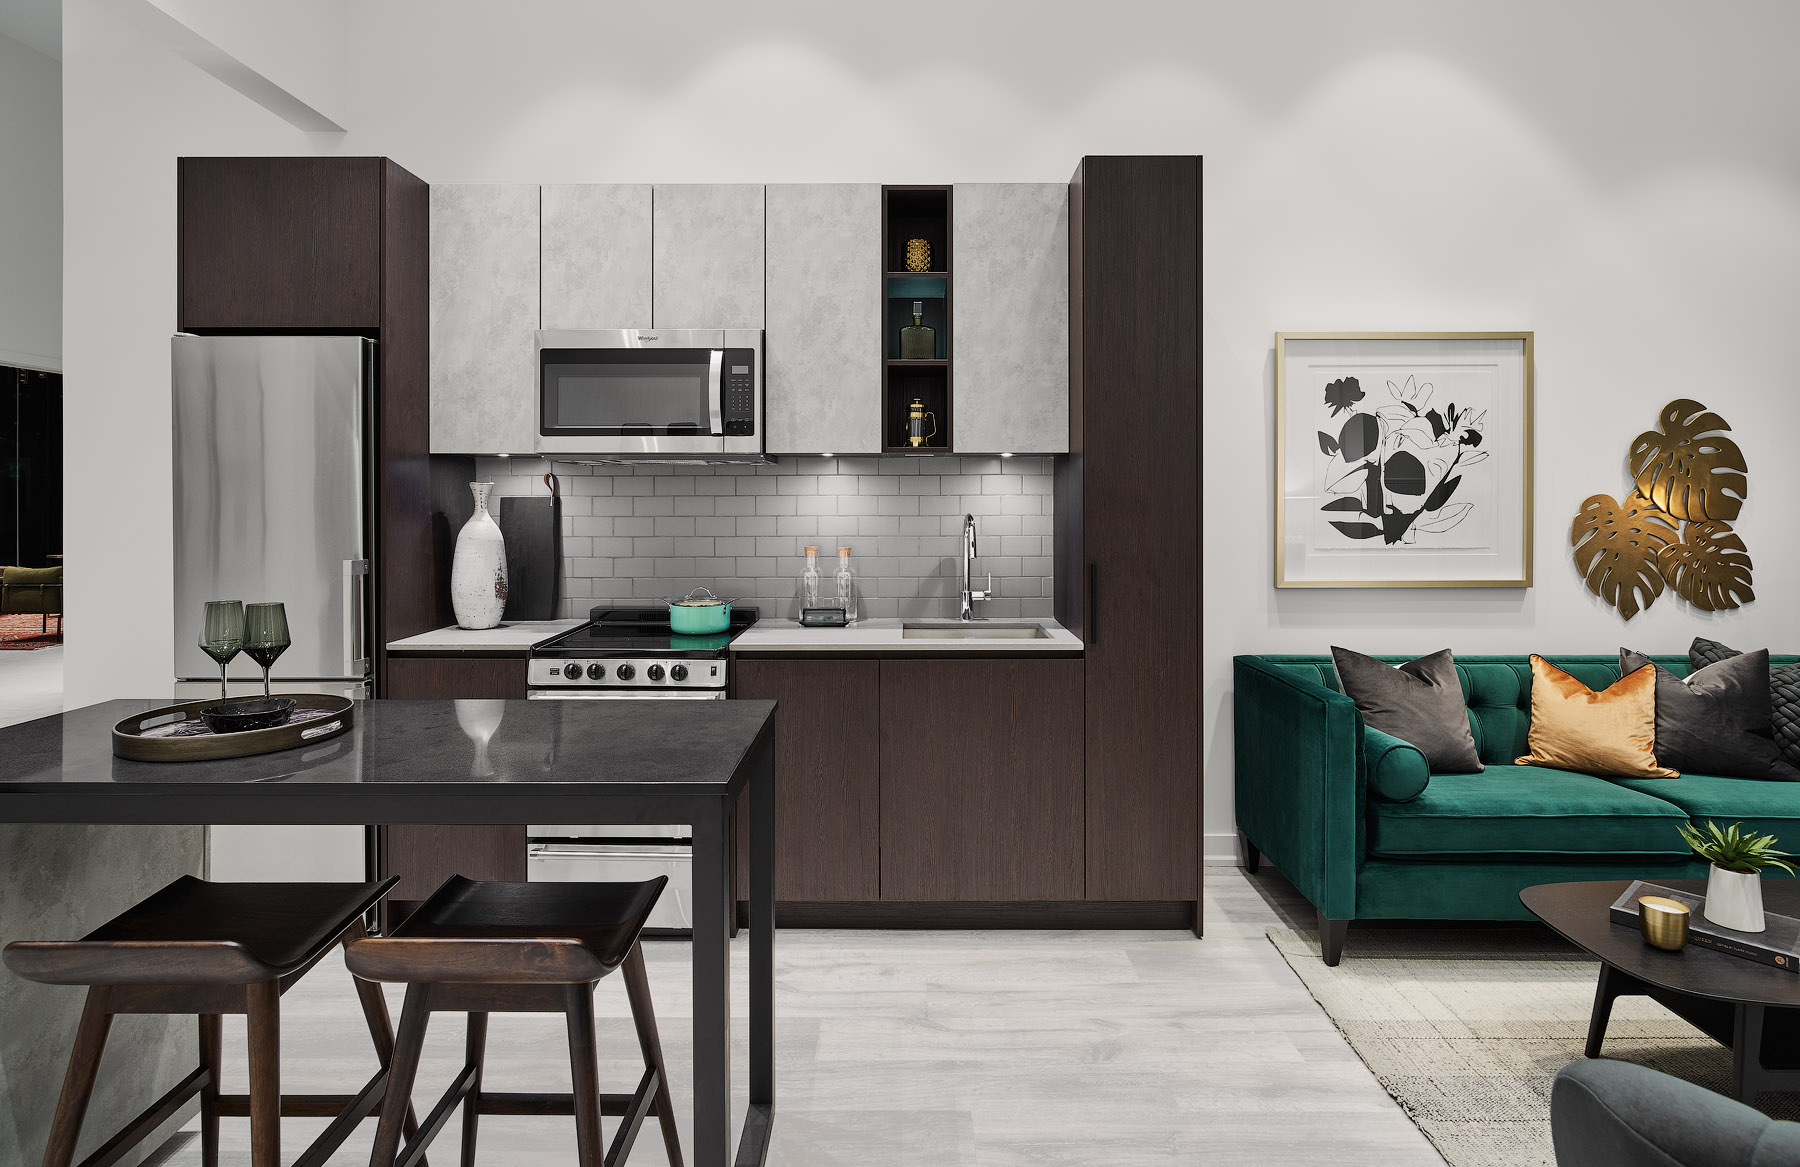 Empire Phoenix suite kitchen with dark brown and white colour blocking cabinetry and island with stools